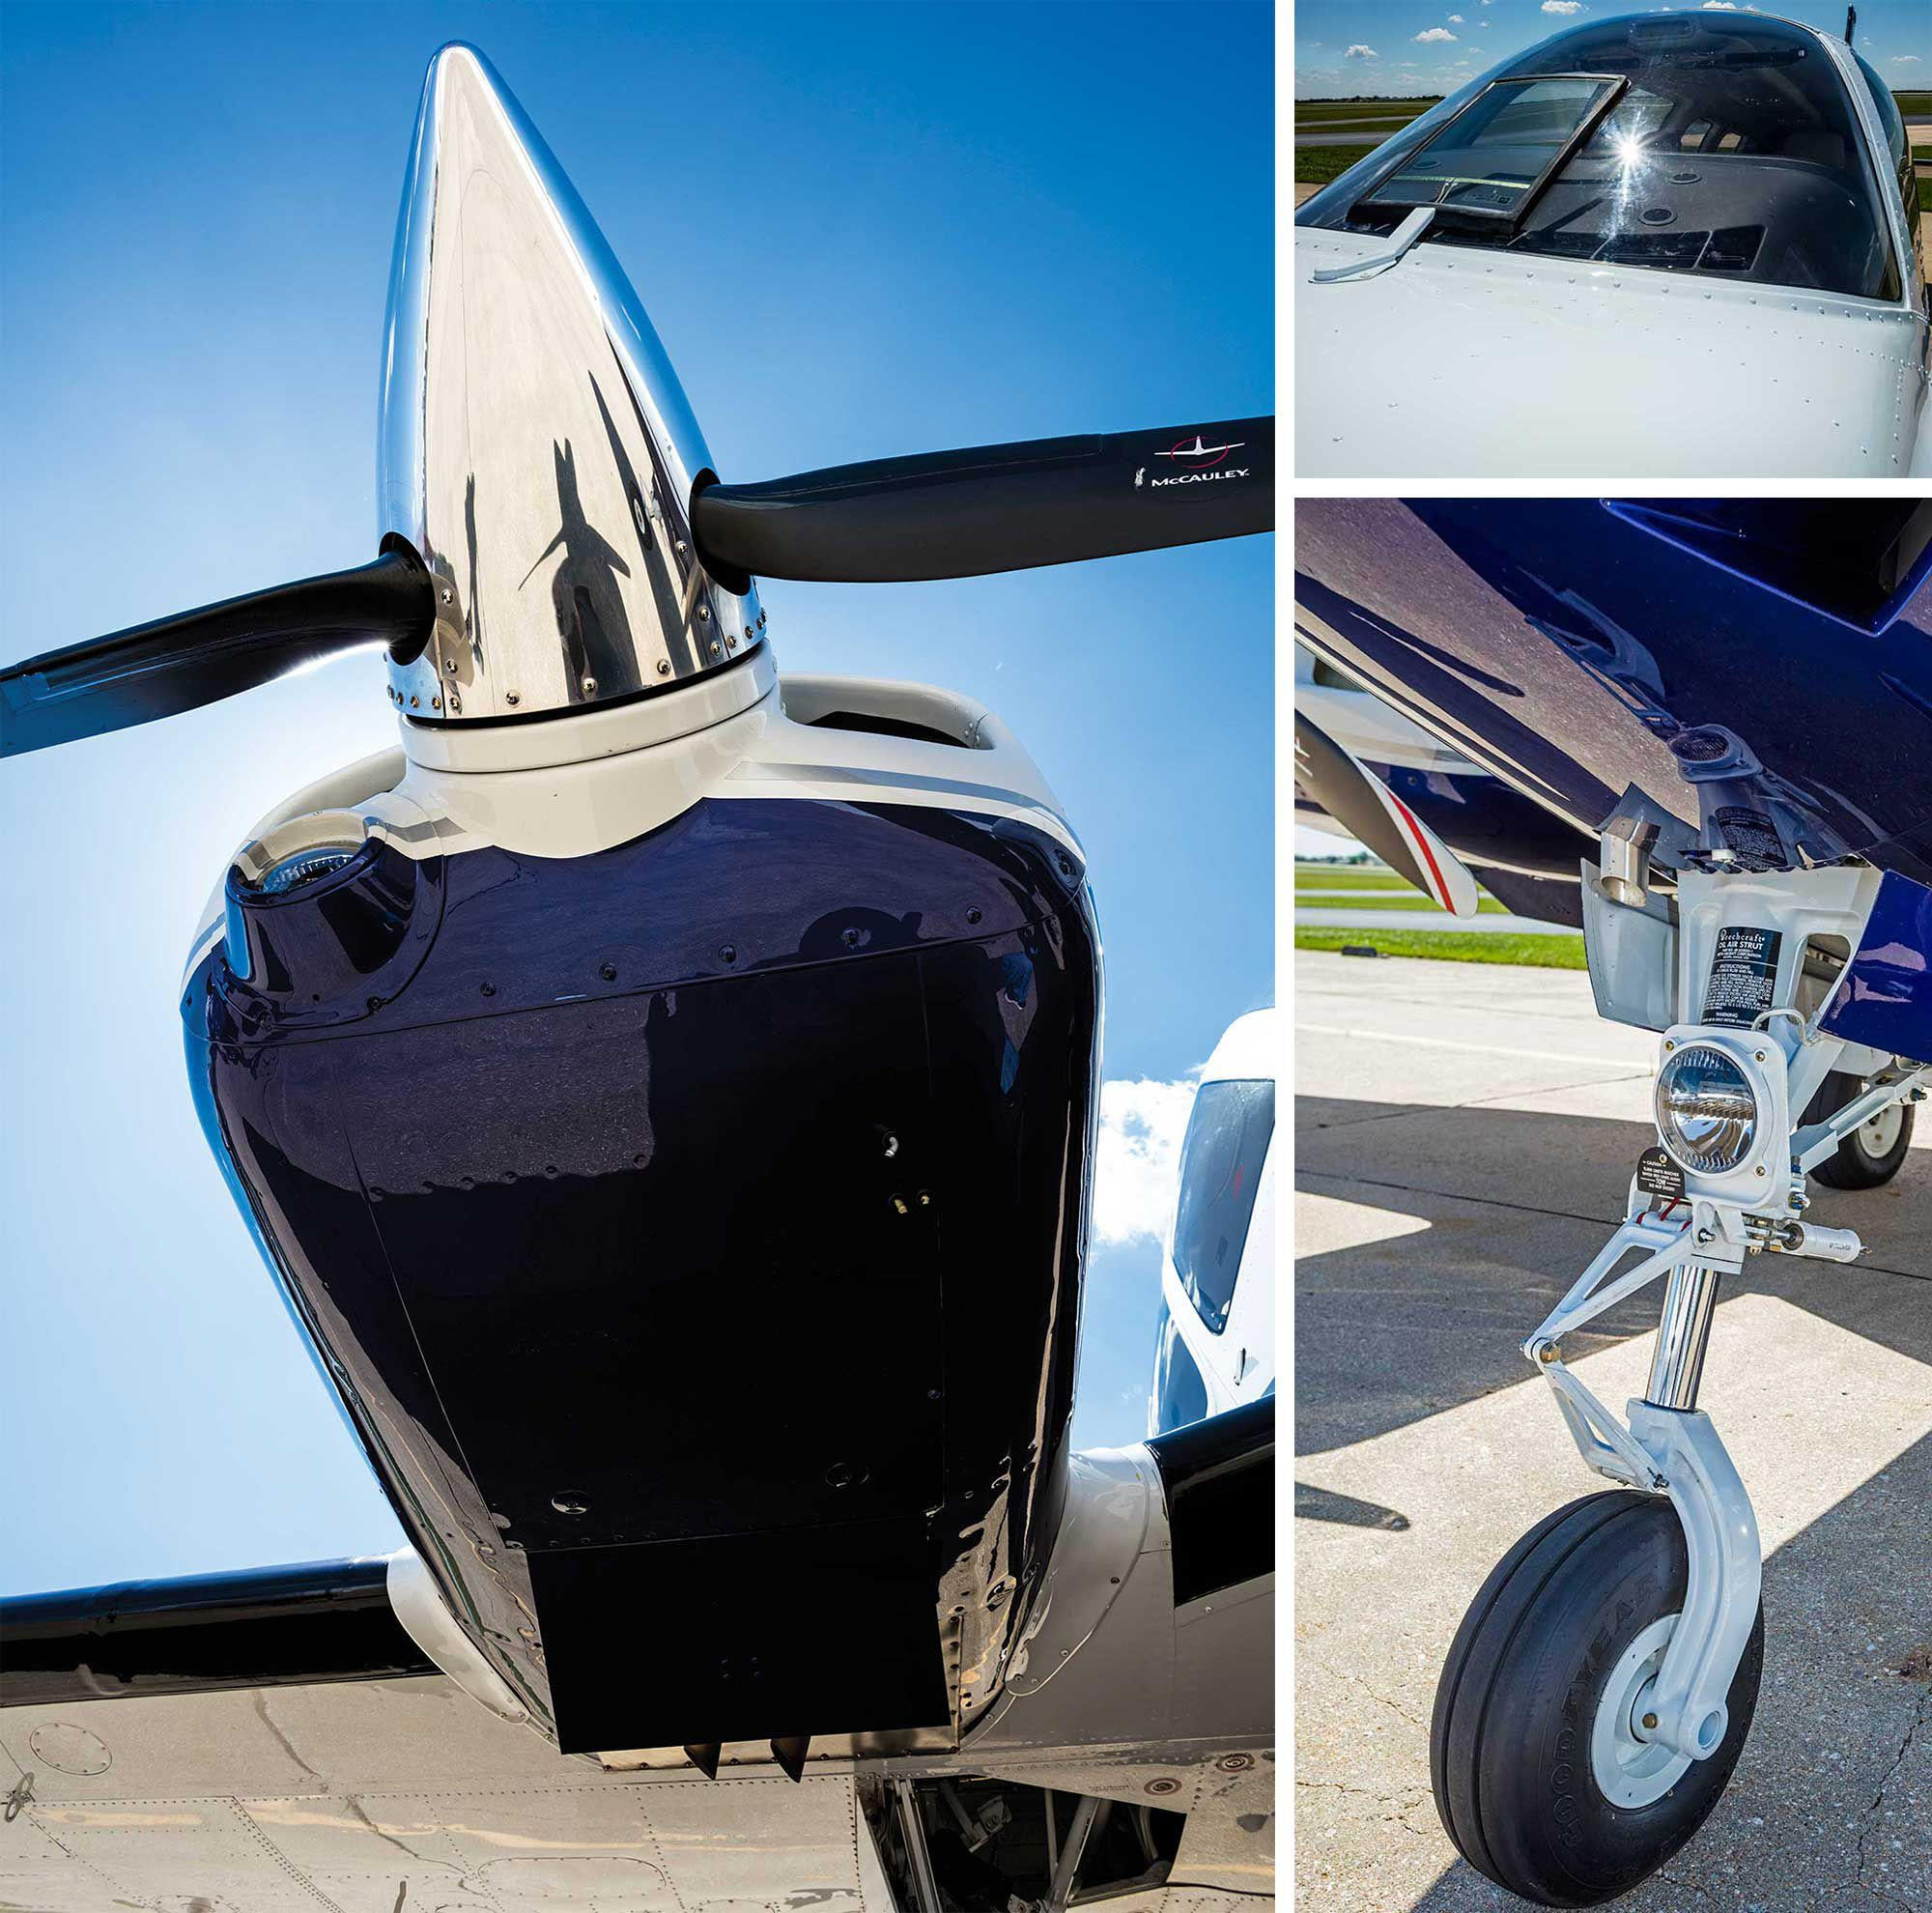 What It's Like to Fly the Beechcraft Baron G58 | Flying